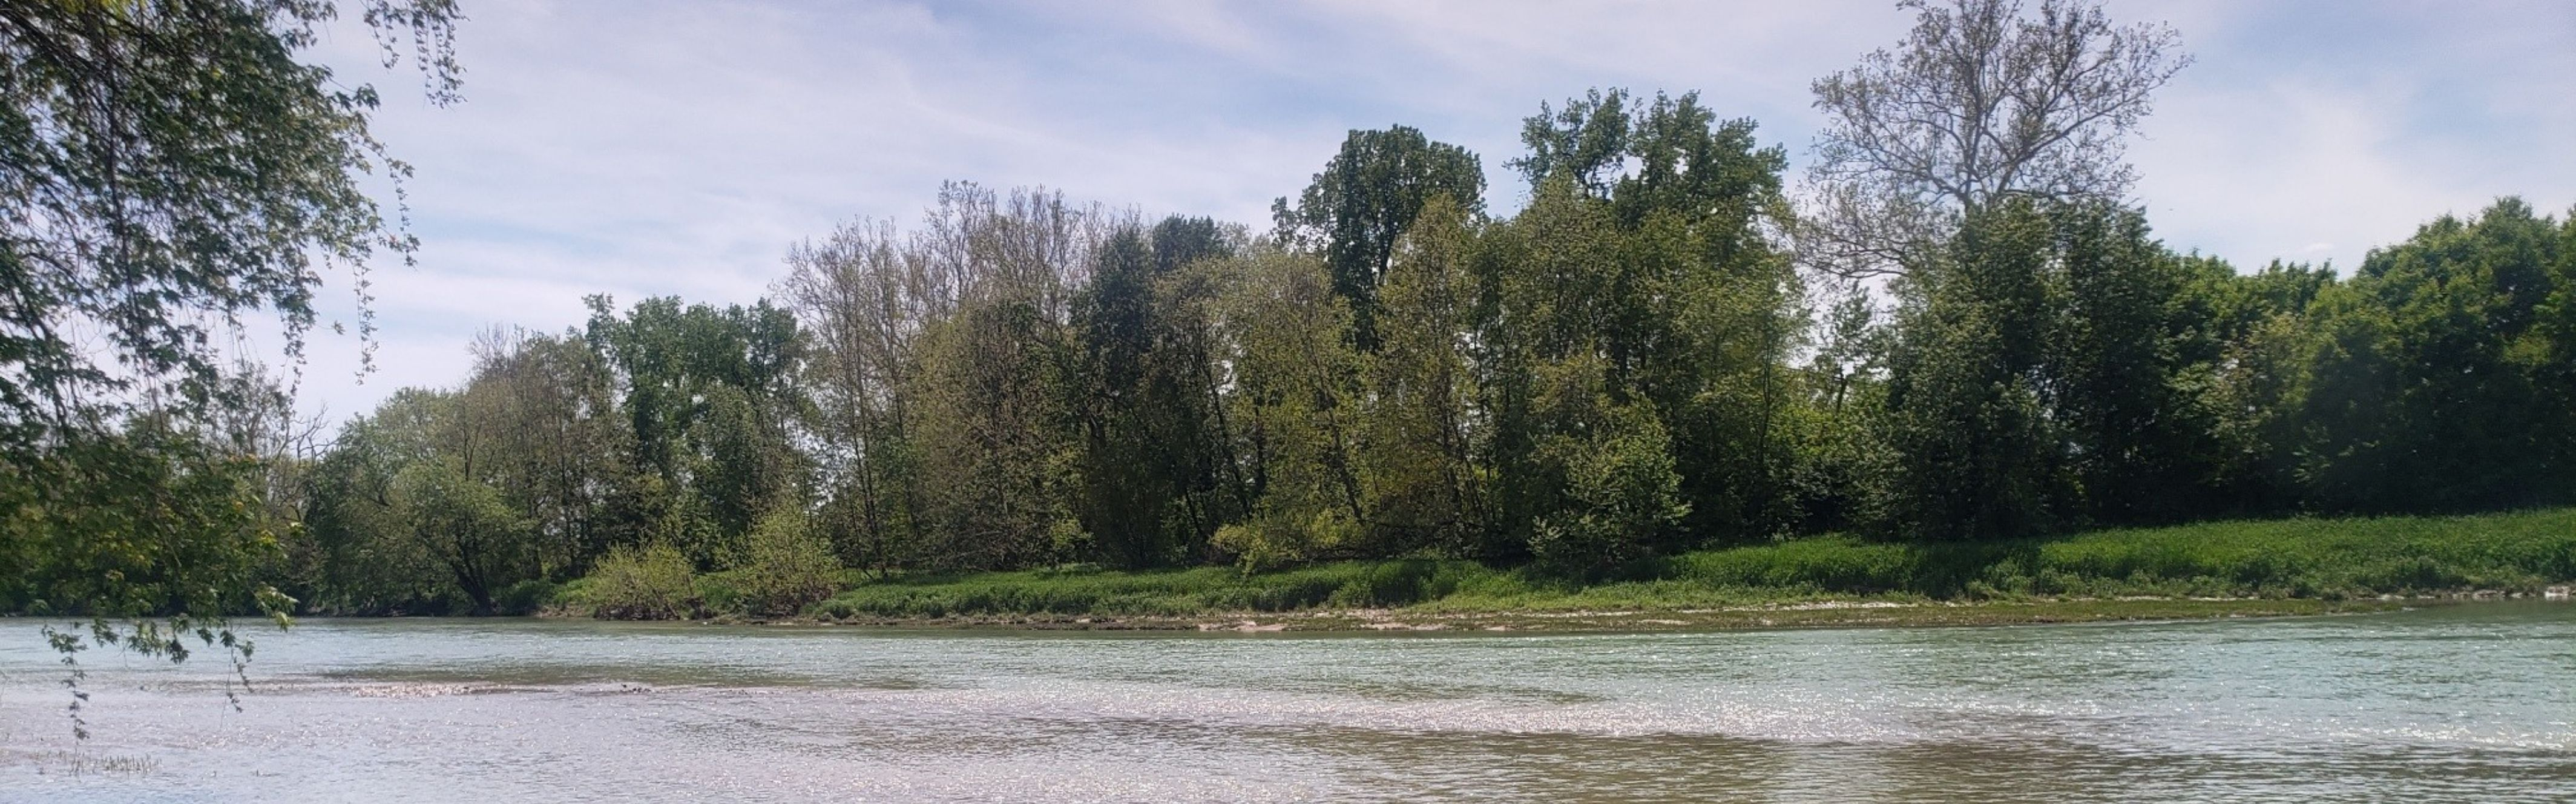 river, trees, and sky